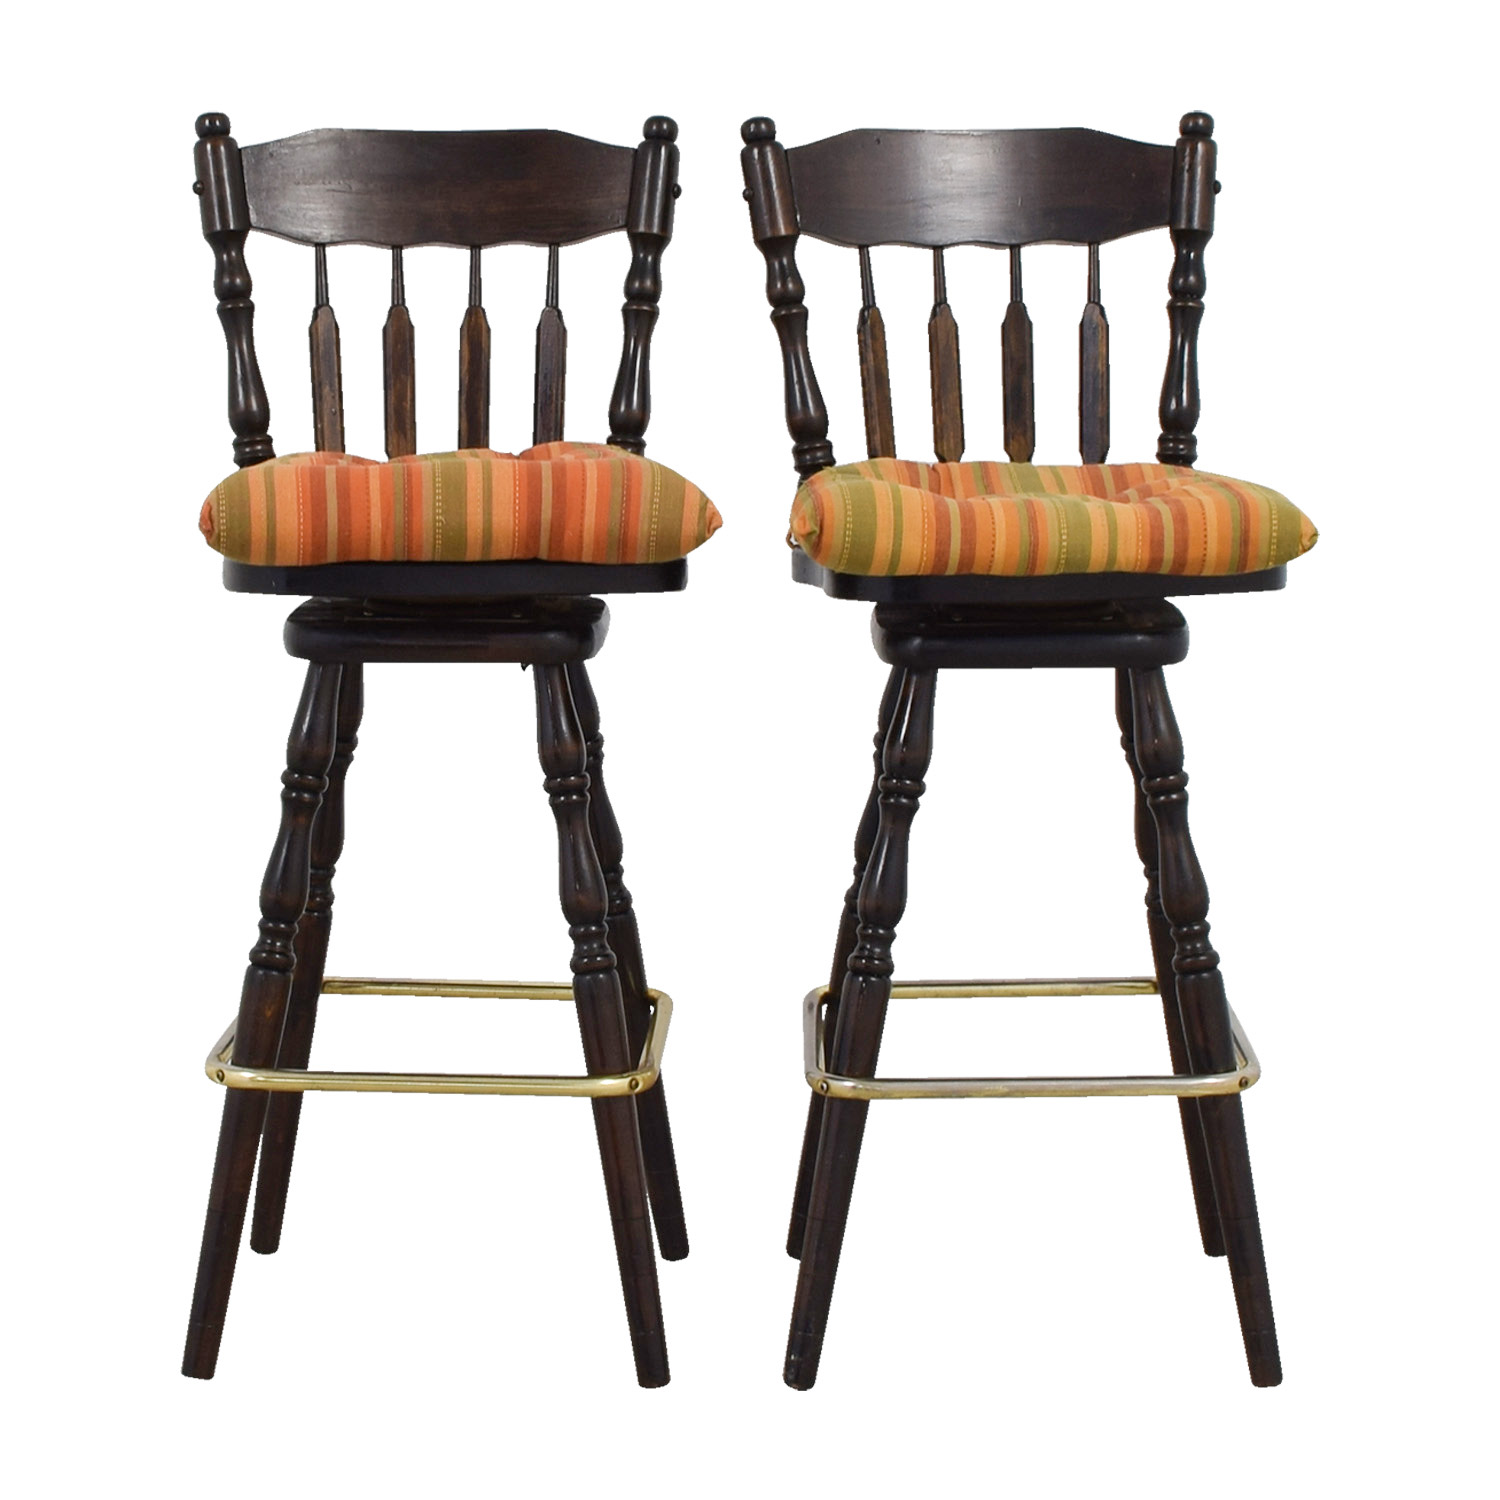 Dutch Crafters Dutch Crafters Windsor Walnut Swivel Bar Stools multi-colored